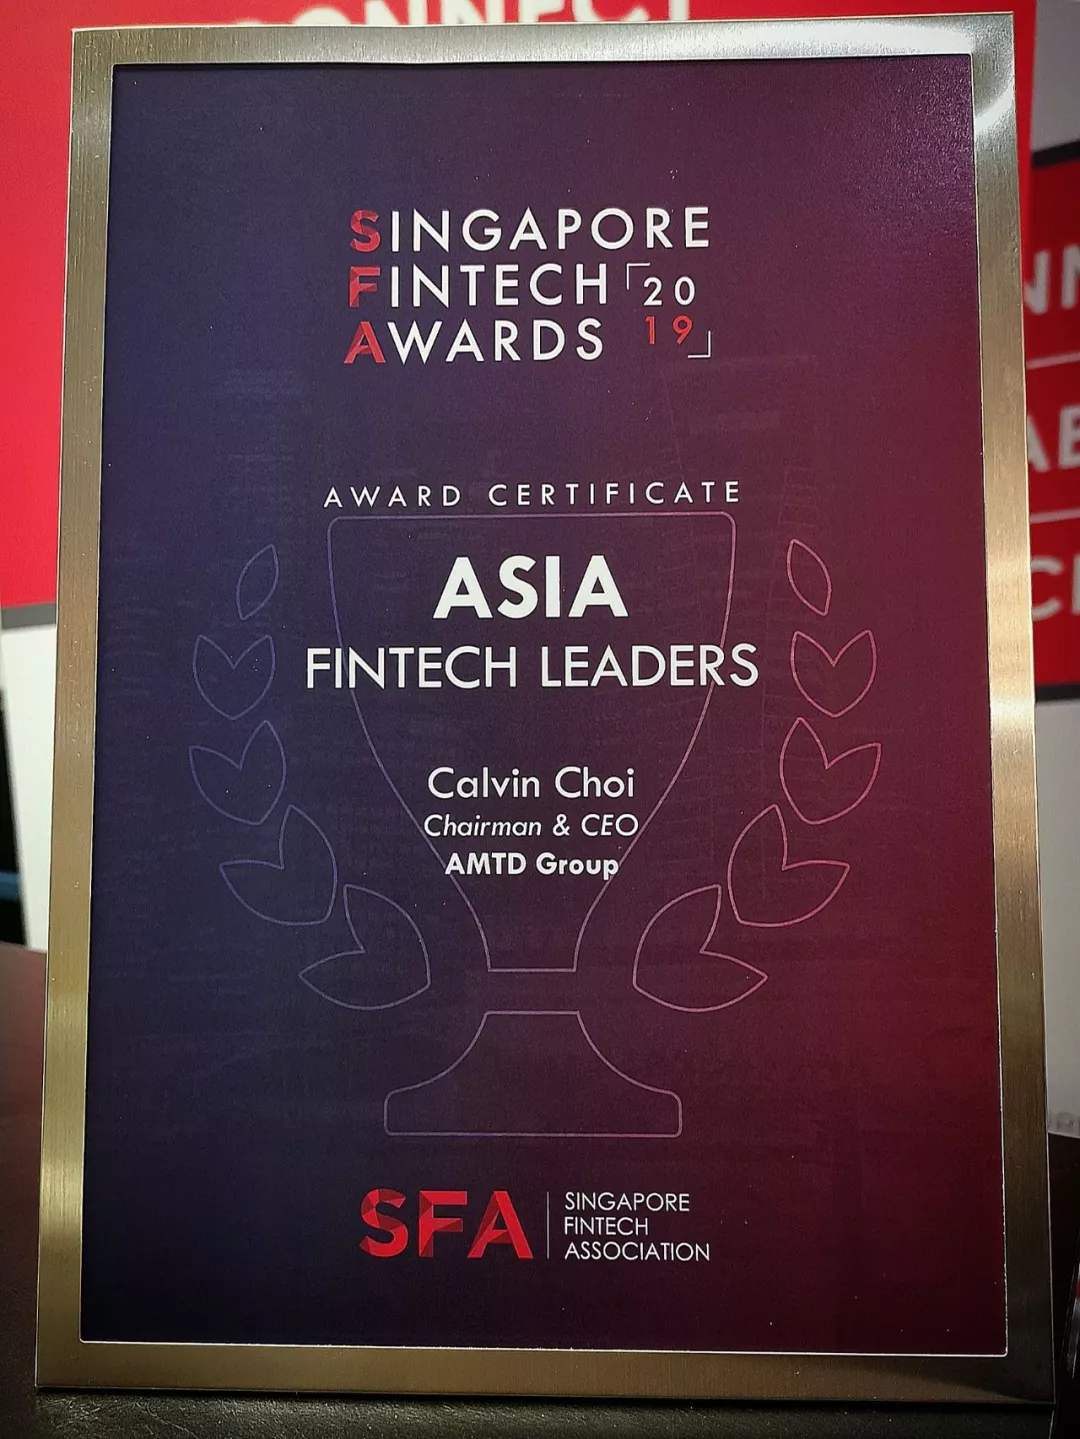 Calvin Choi was awarded Asia Fintech Leader by MAS and Singapore Fintech Association